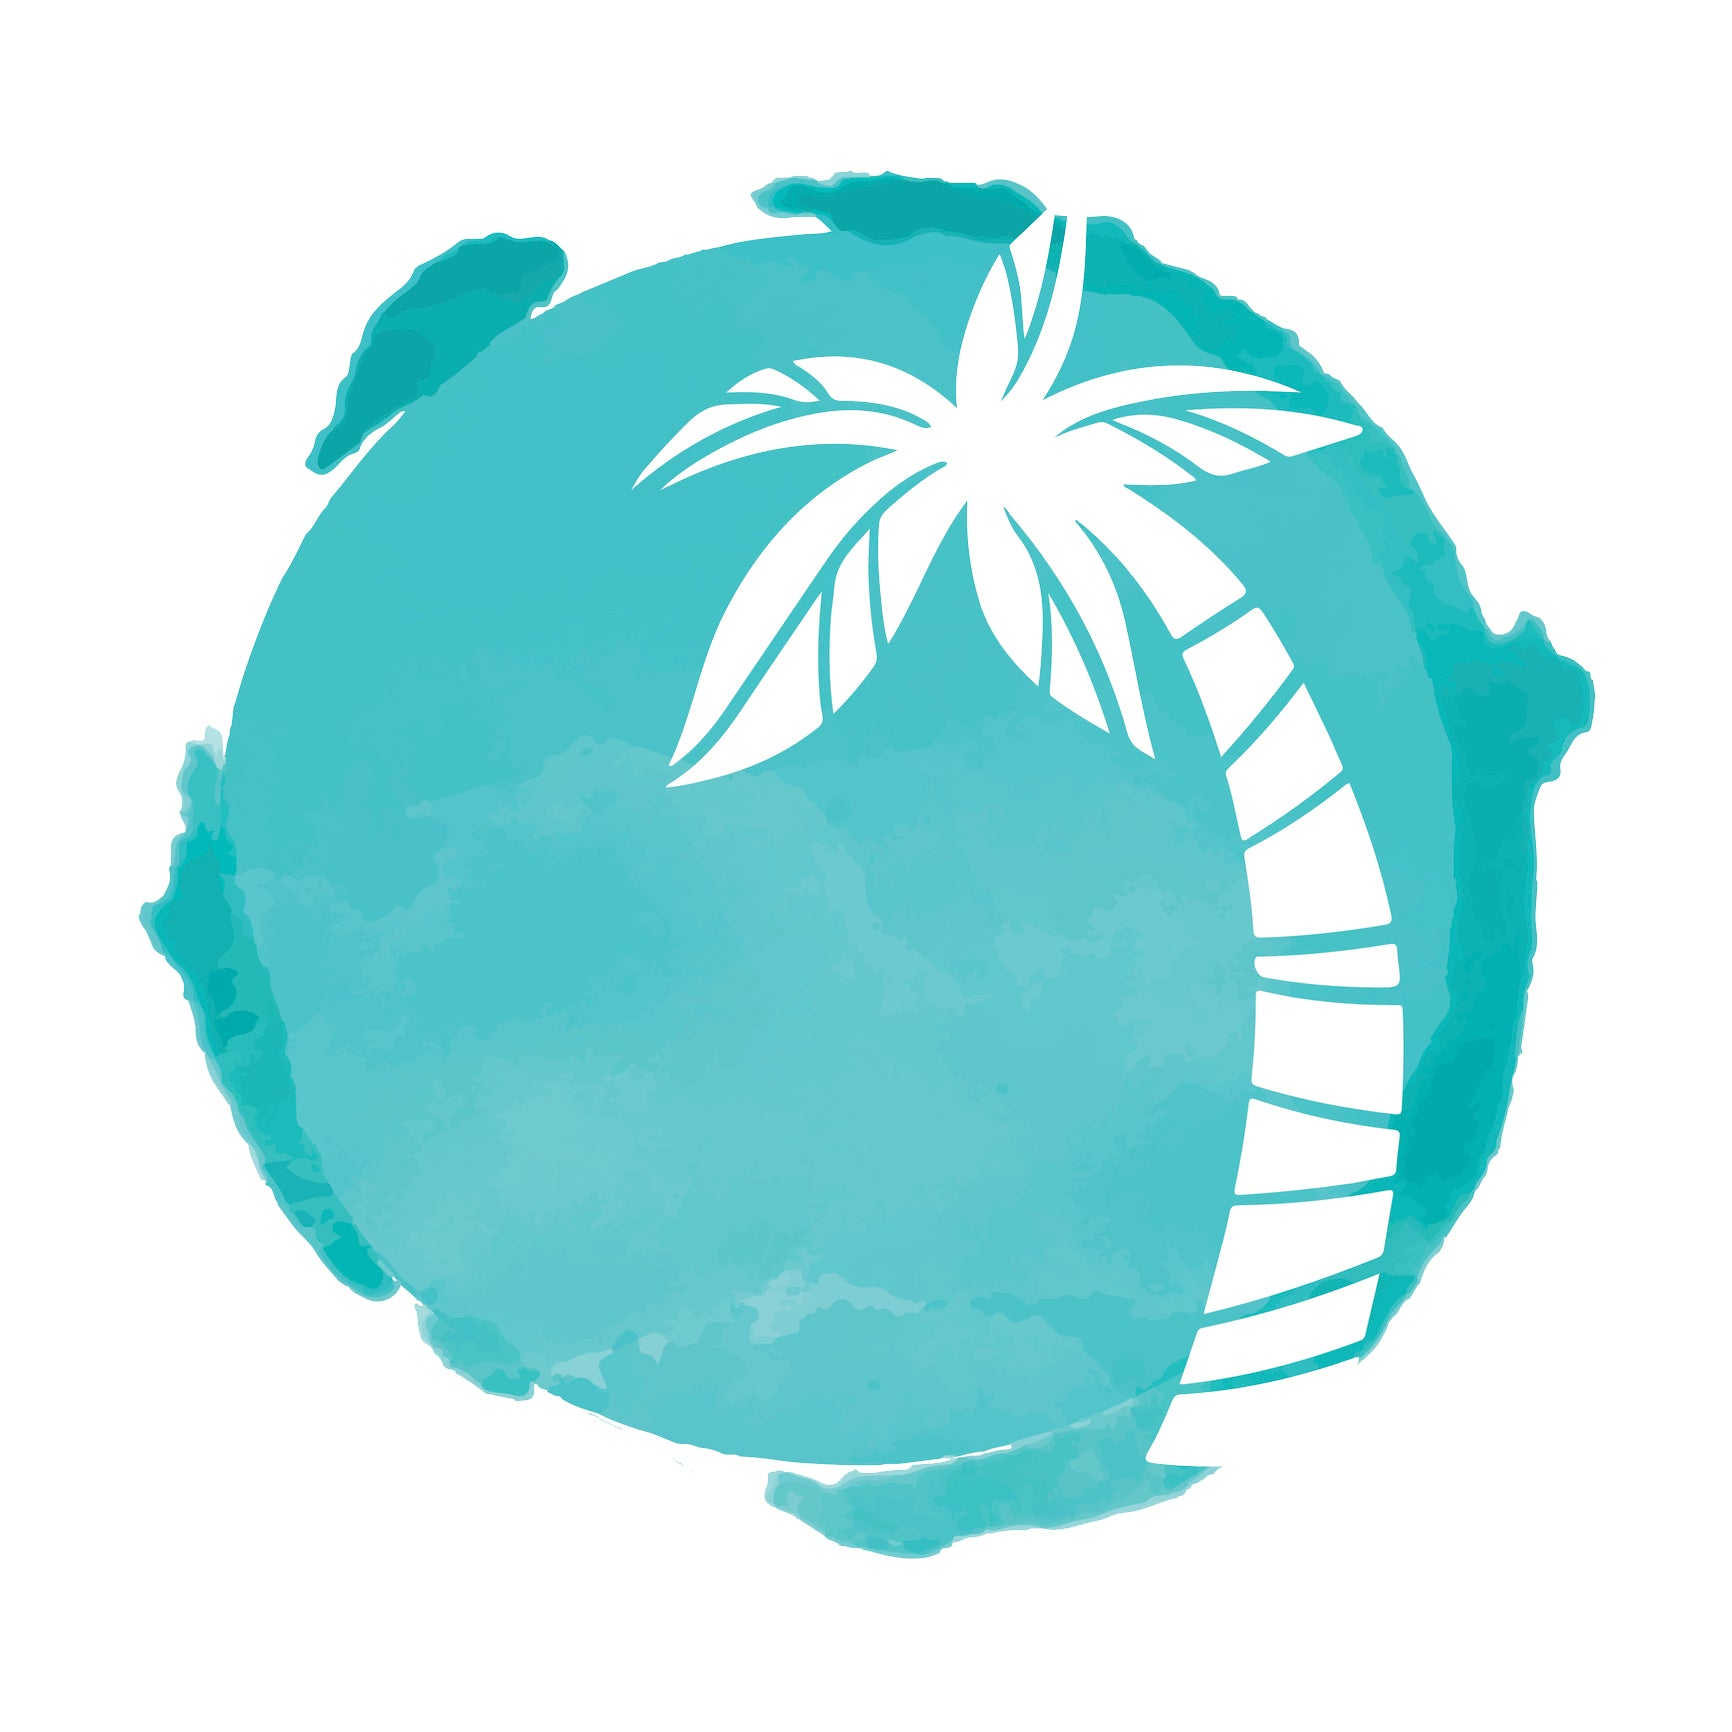 Teal Watercolor Paint with Tropical Palm Tree Silhouette Vinyl Decal Sticker